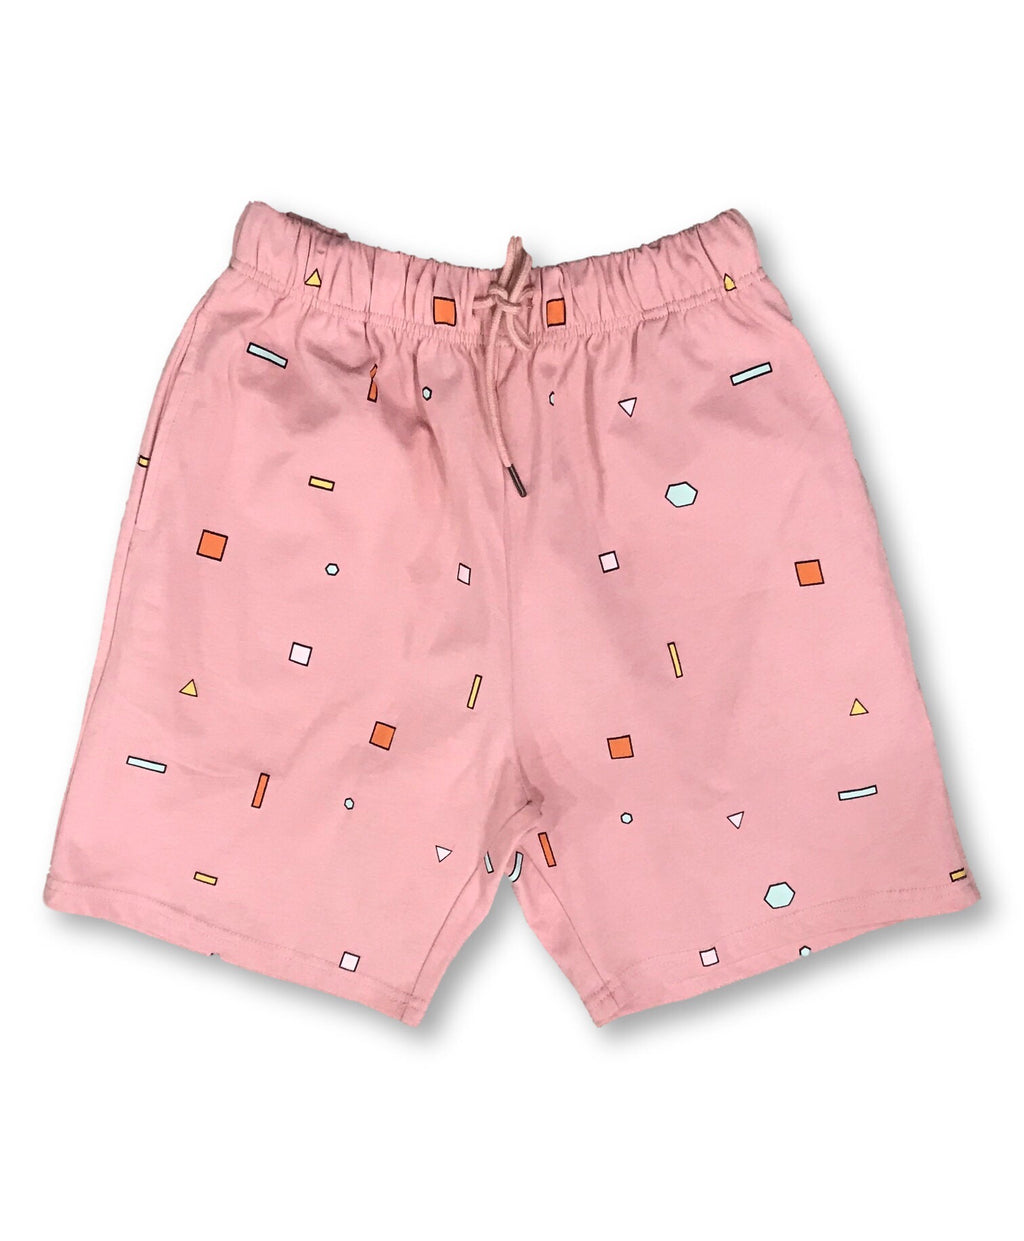 Scatter Shapes Shorts - Salmon